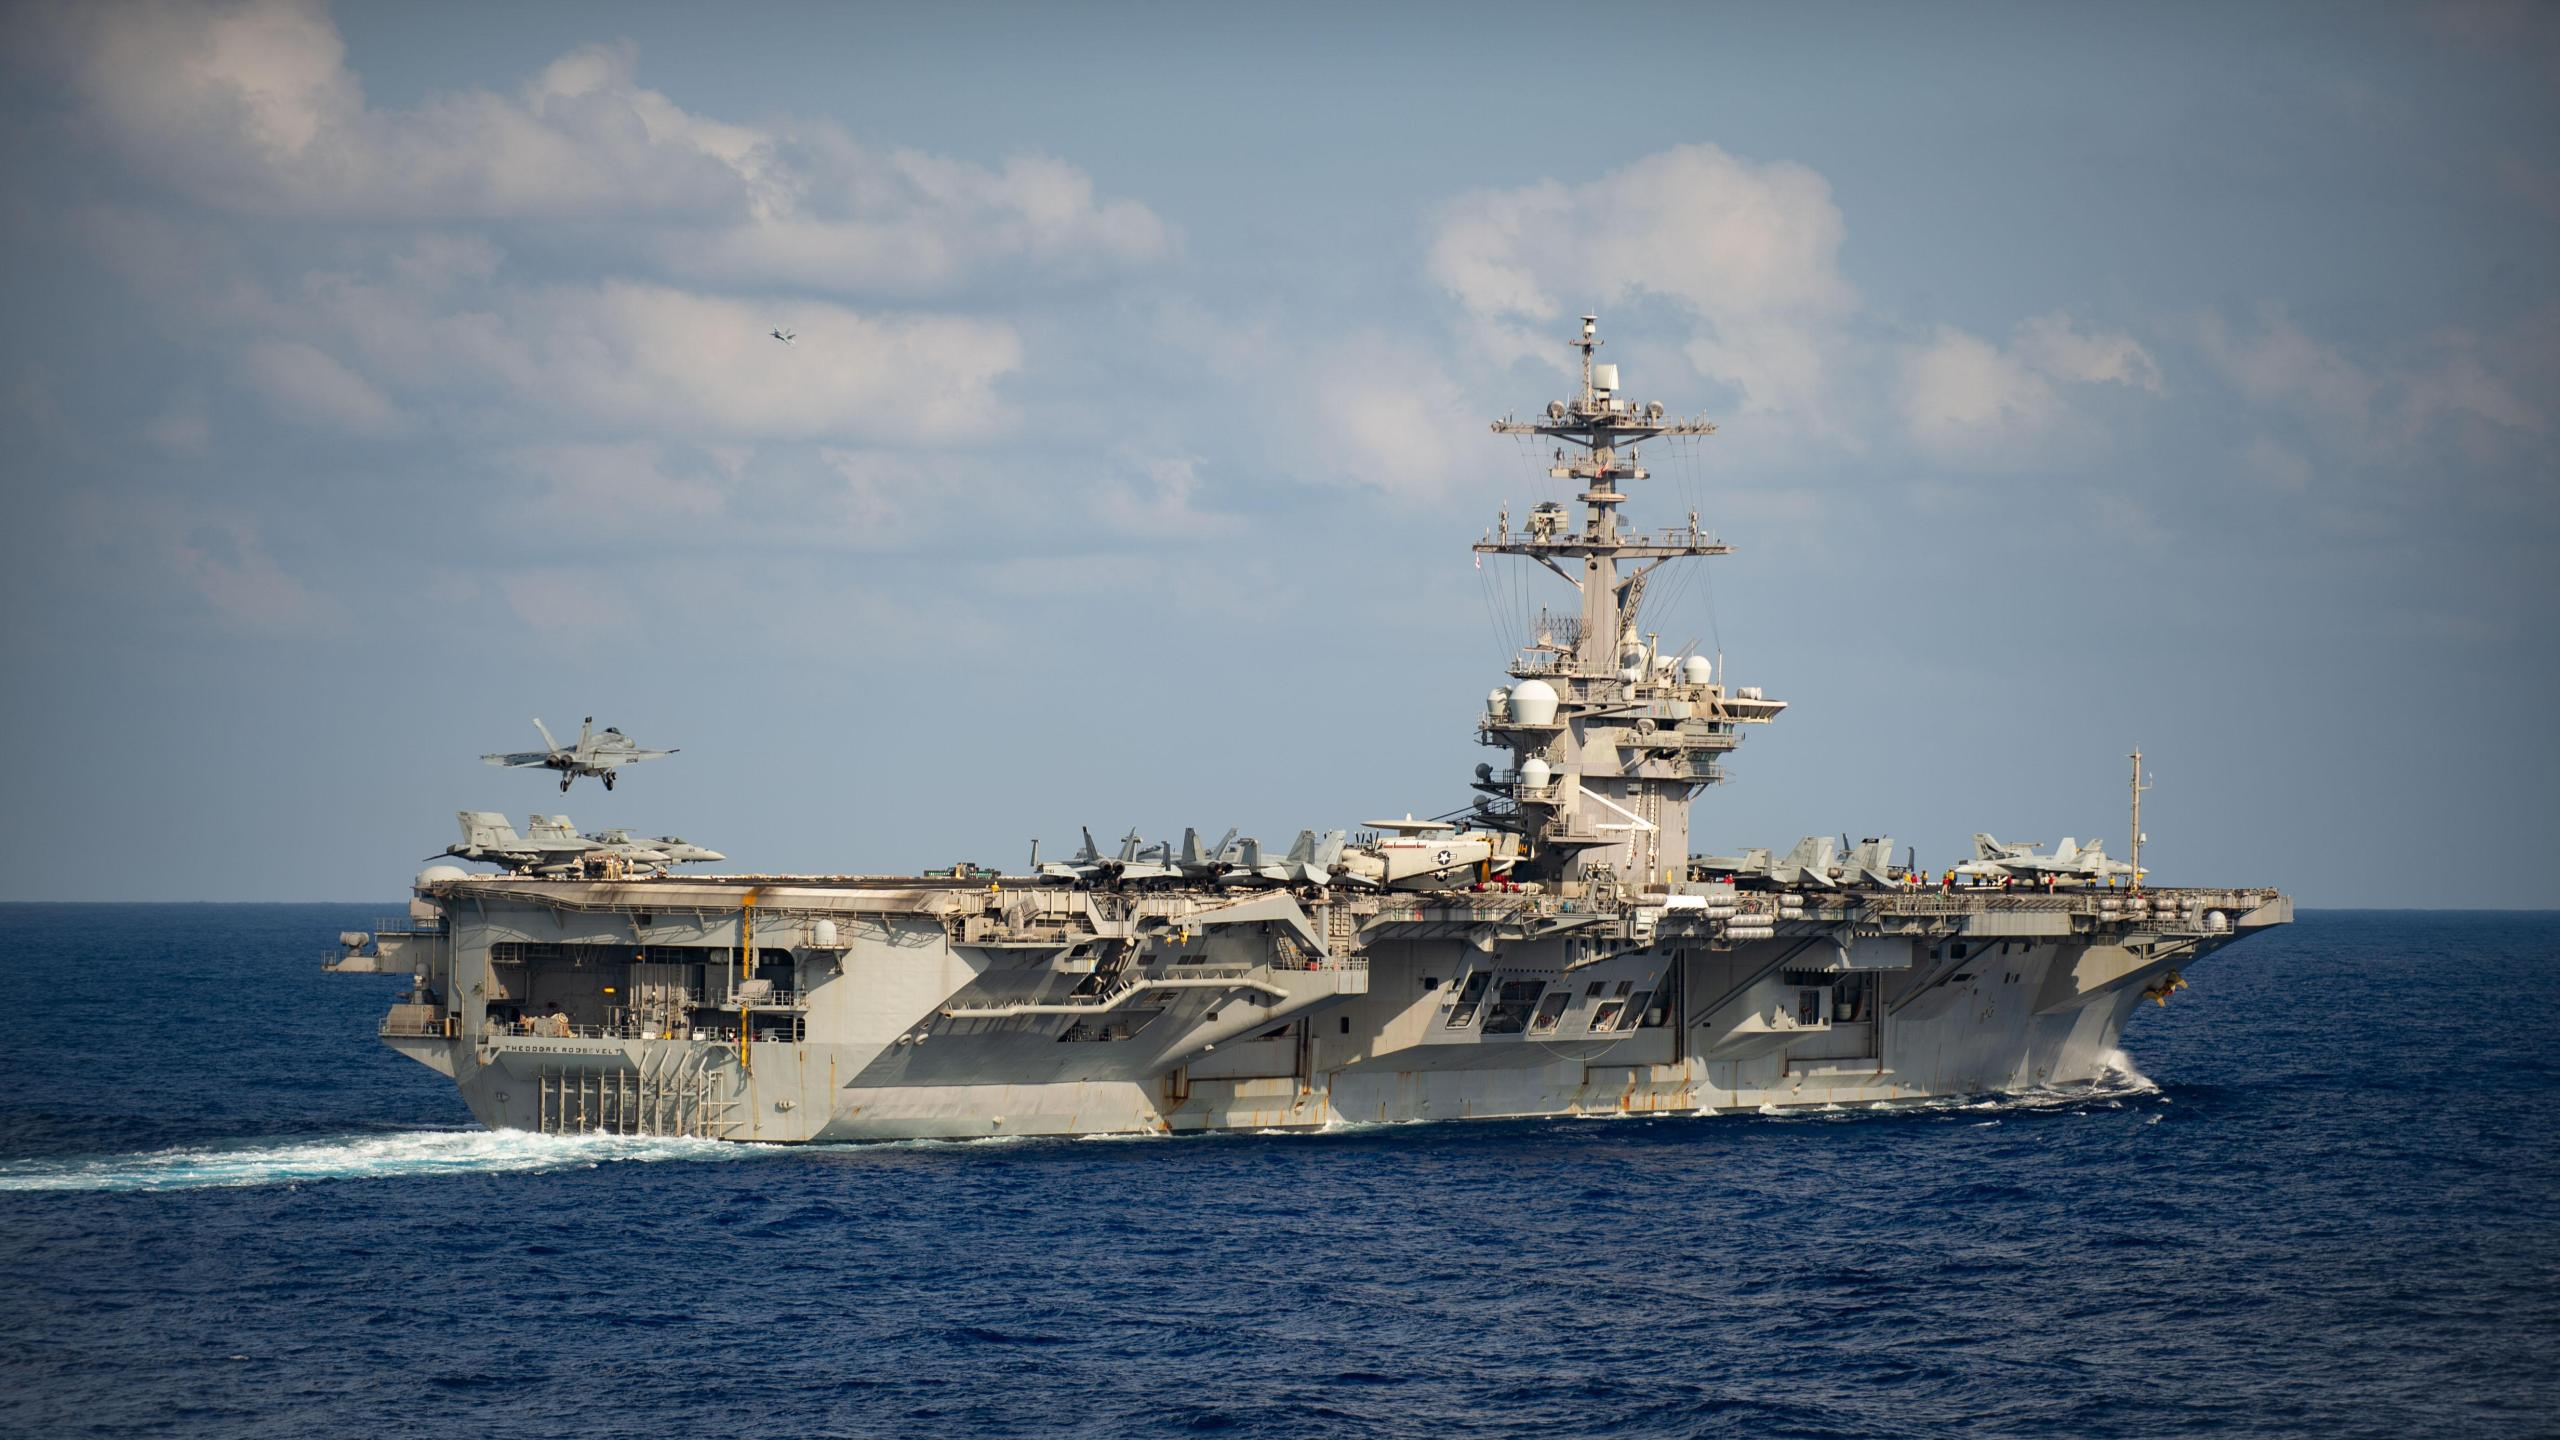 The Theodore Roosevelt Carrier Strike Group on a scheduled deployment to the Indo-Pacific on March 18, 2020. (U.S. Navy by Mass Communication Specialist 3rd Class Nicholas V. Huynh/Released via CNN)